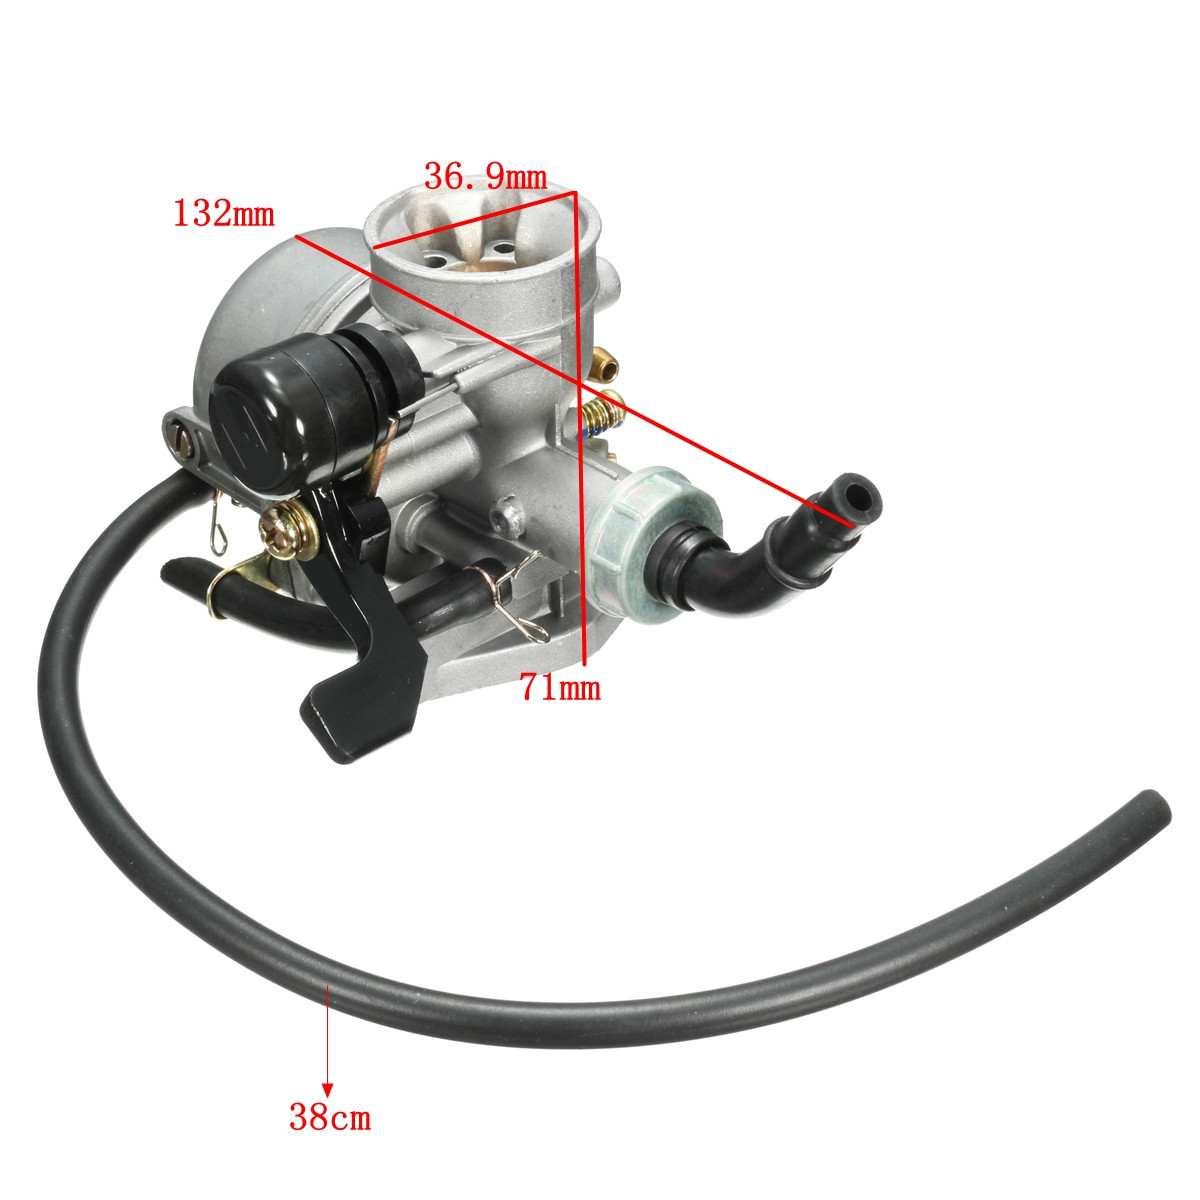 Carb Carburetor with Air Filter For Honda CRF50F CRF70F Dirt Pit Bike 2008-2012